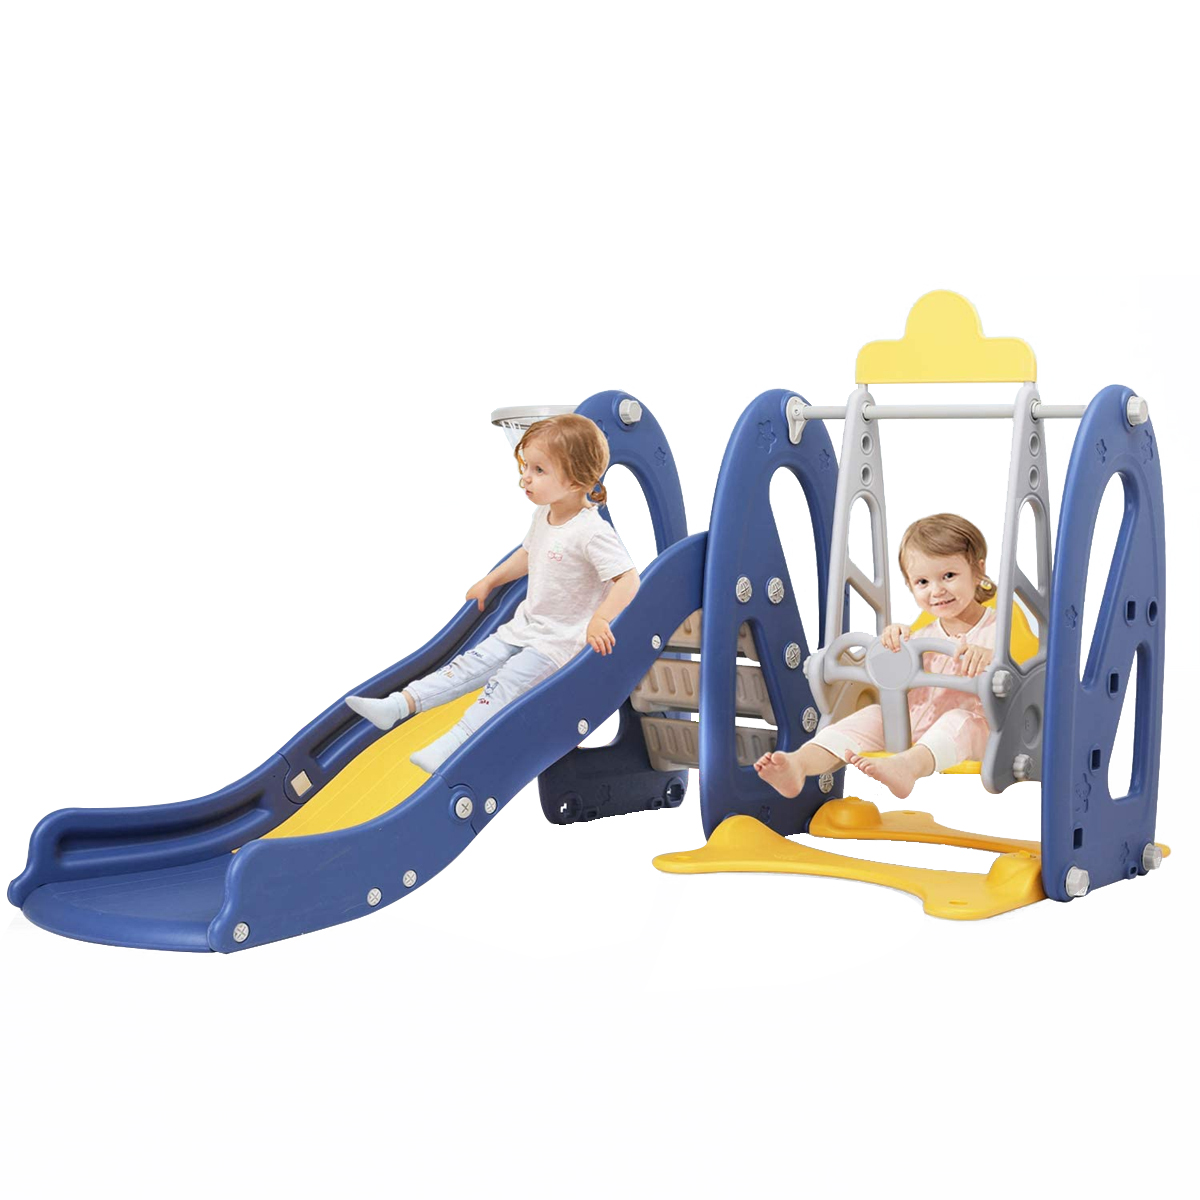 Blue Playground center Toddler Mountaineering Toy with Basketball Hoop for Indoor//Outdoor 4 in1 Children Climbing Frame Playset with Music Player Garden Backyard Slide /& Swing Set for Kids